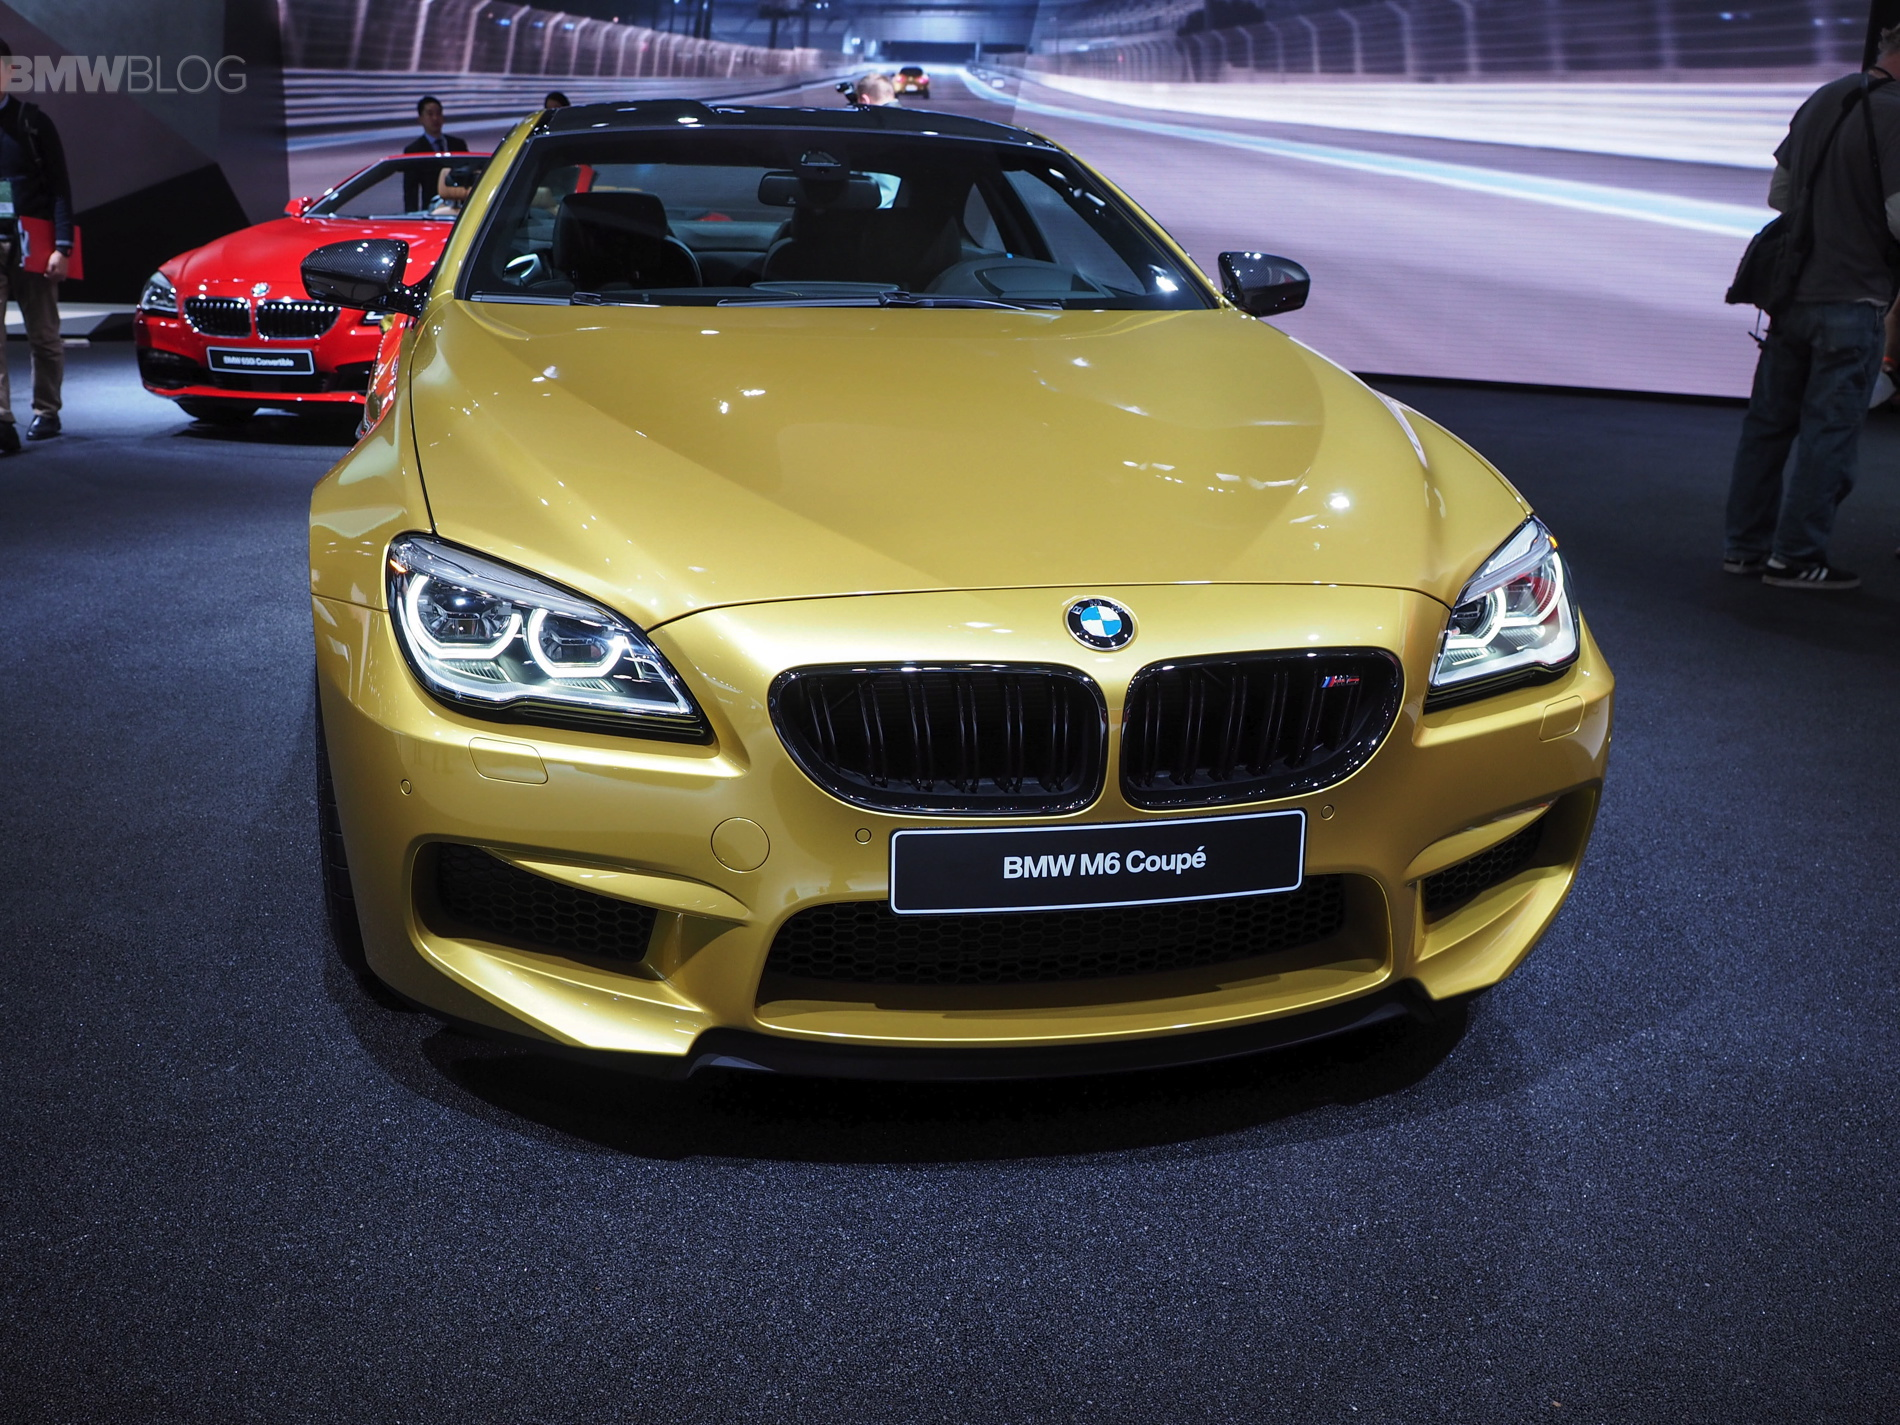 2016 bmw m6 coupe facelift austin yellow 02